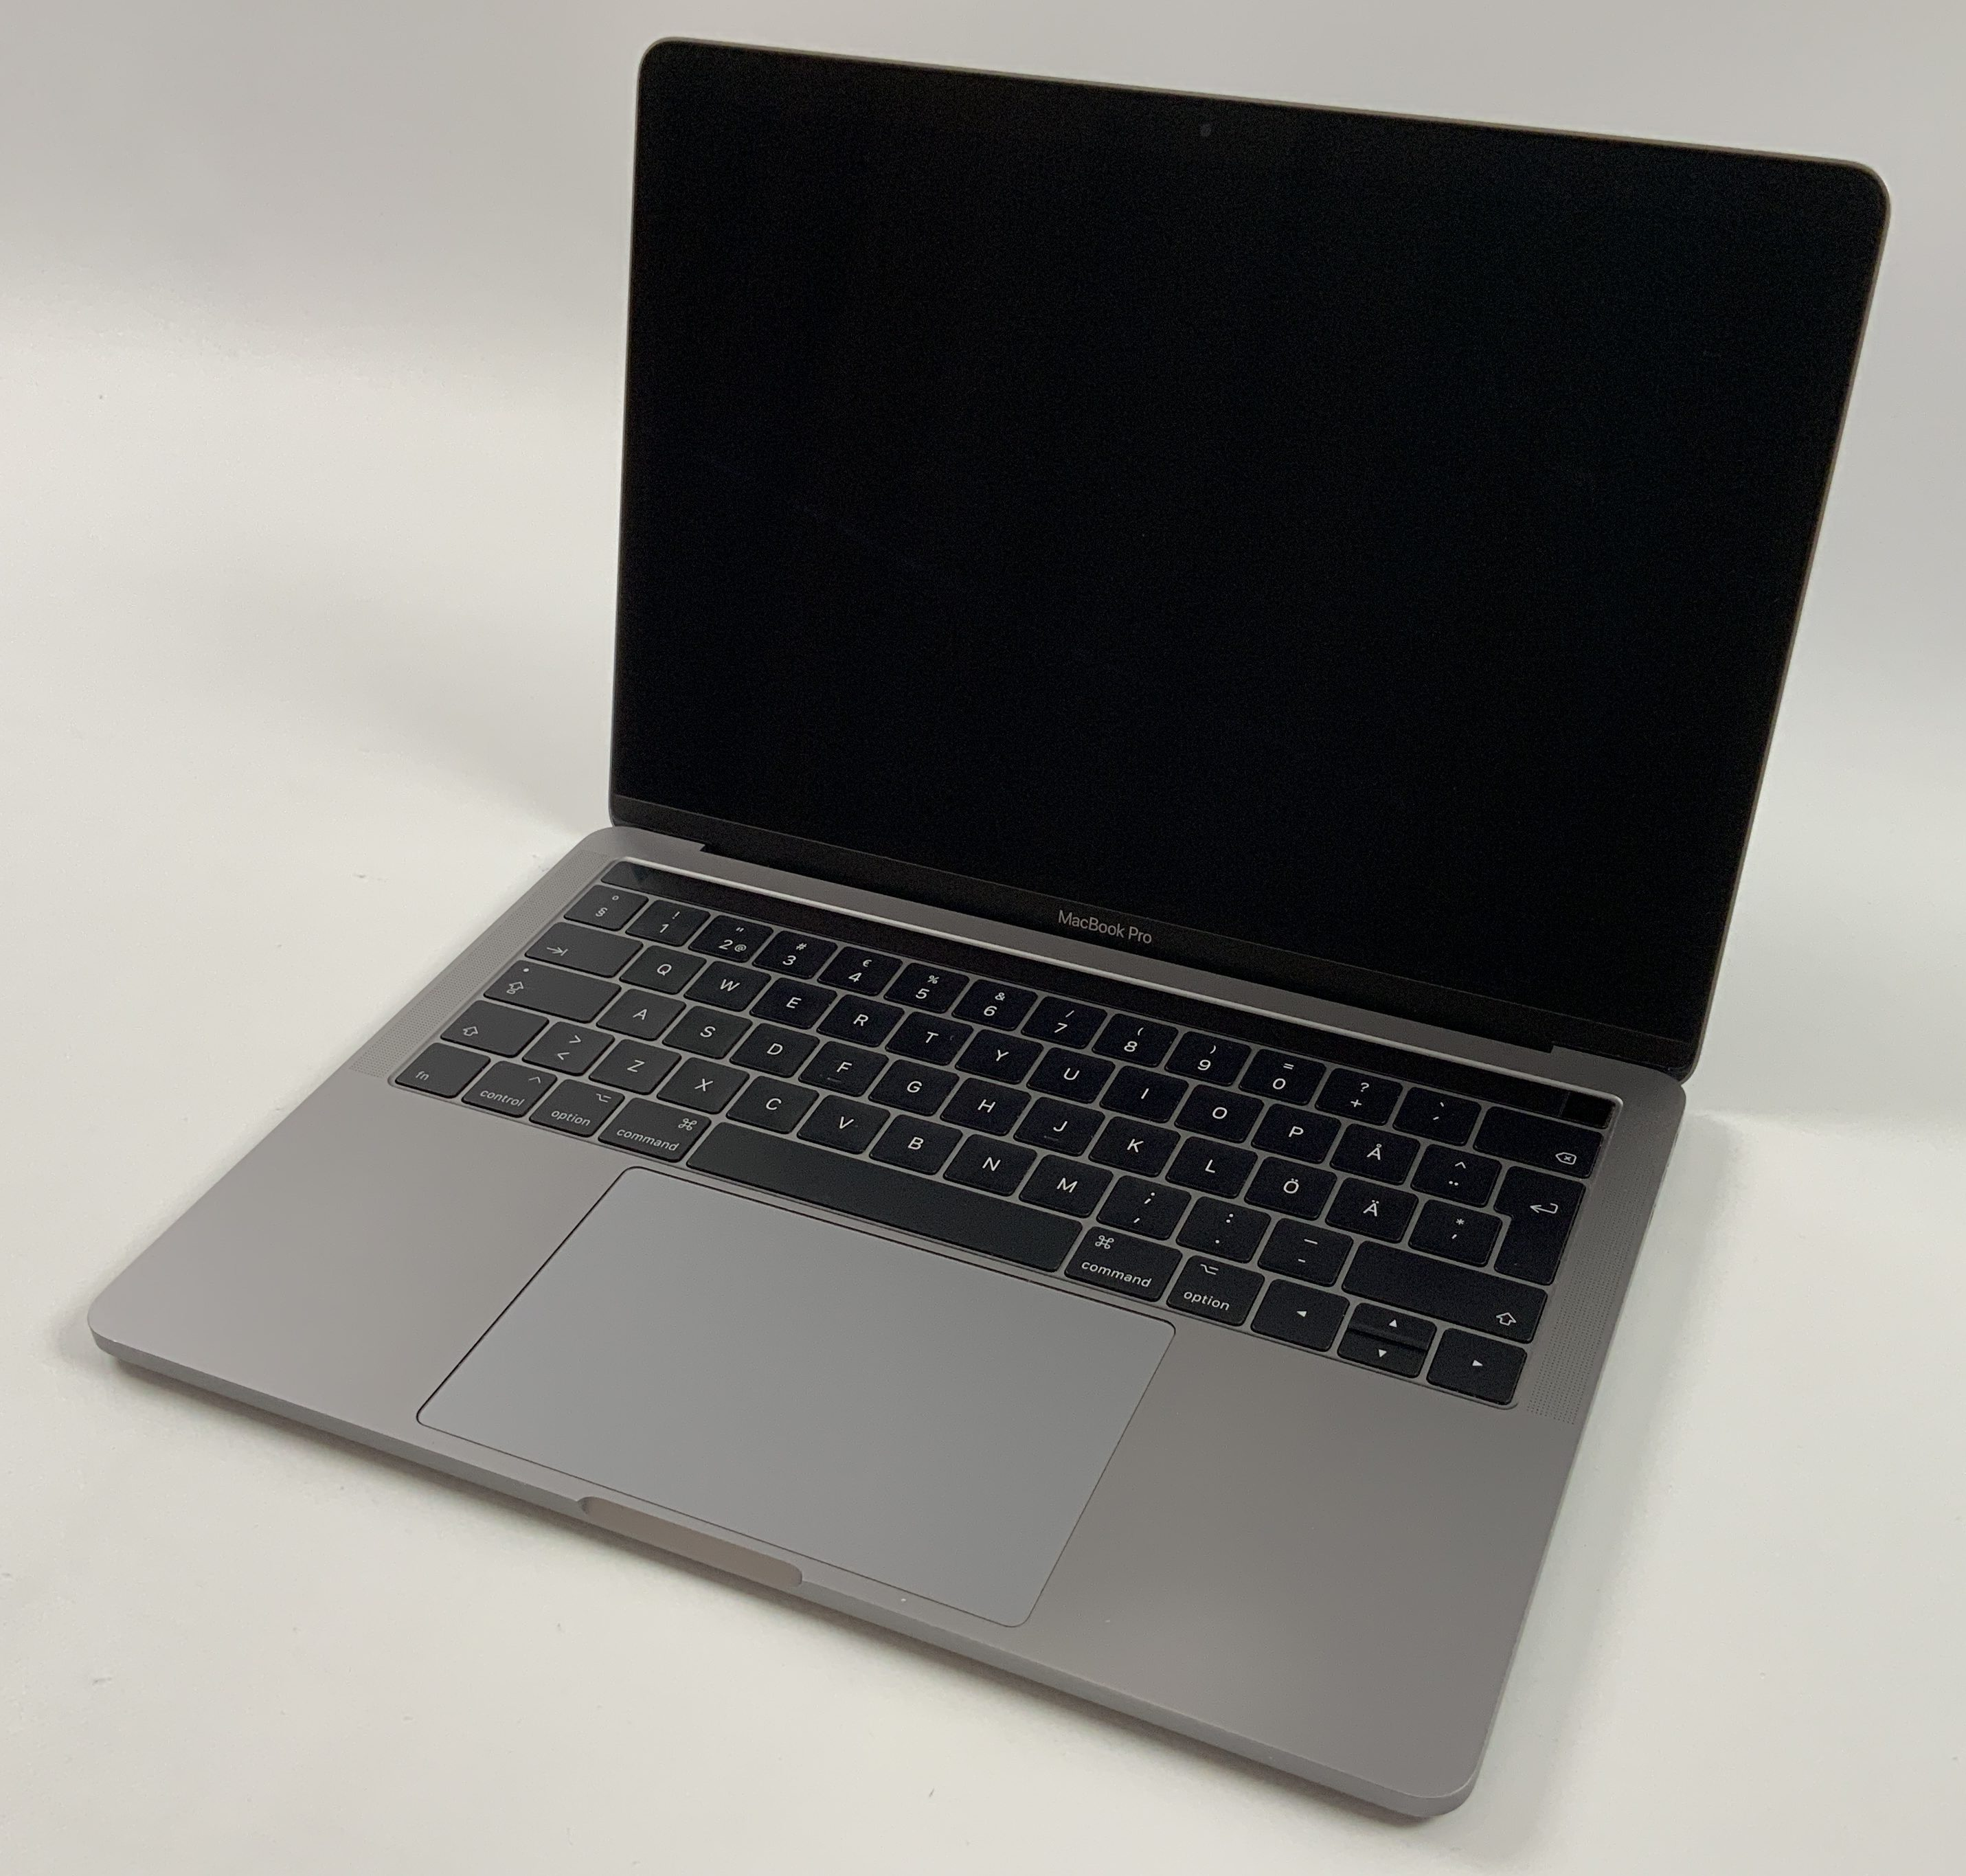 "MacBook Pro 13"" 4TBT Mid 2017 (Intel Core i5 3.1 GHz 8 GB RAM 512 GB SSD), Space Gray, Intel Core i5 3.1 GHz, 8 GB RAM, 512 GB SSD, obraz 1"